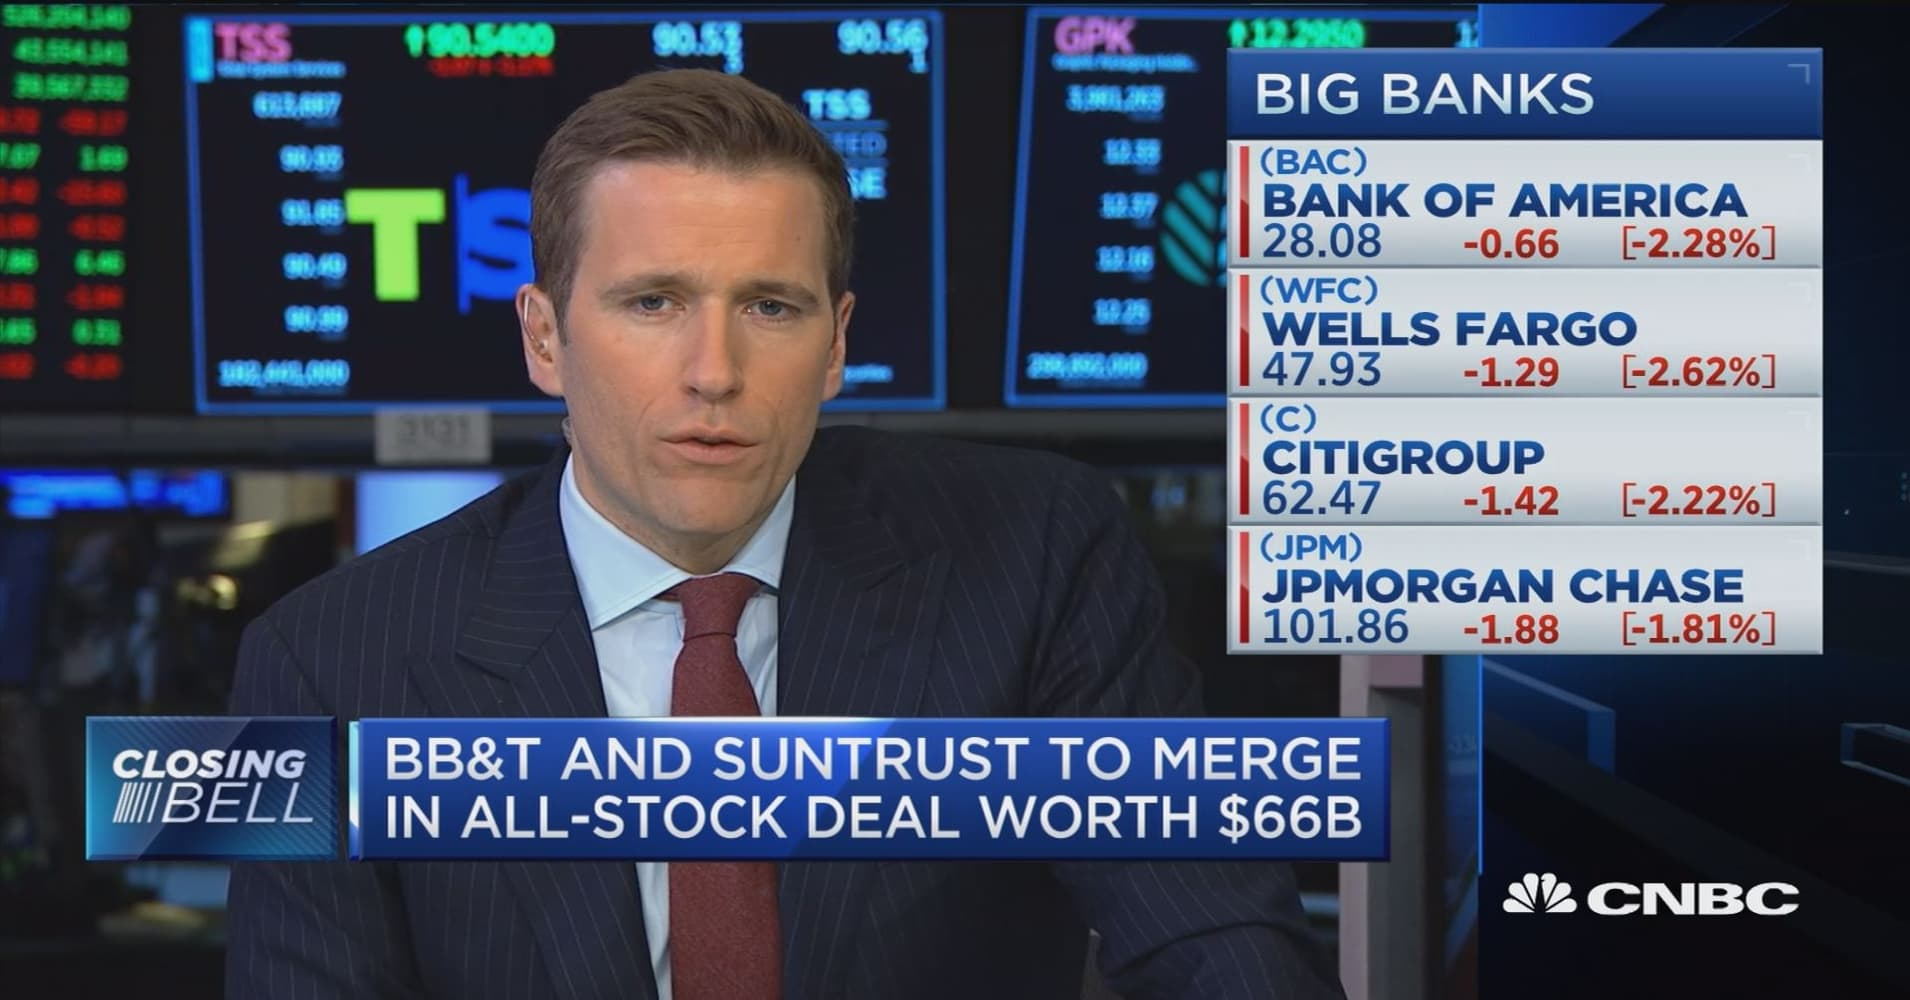 BB&T-SunTrust merger may be defensive